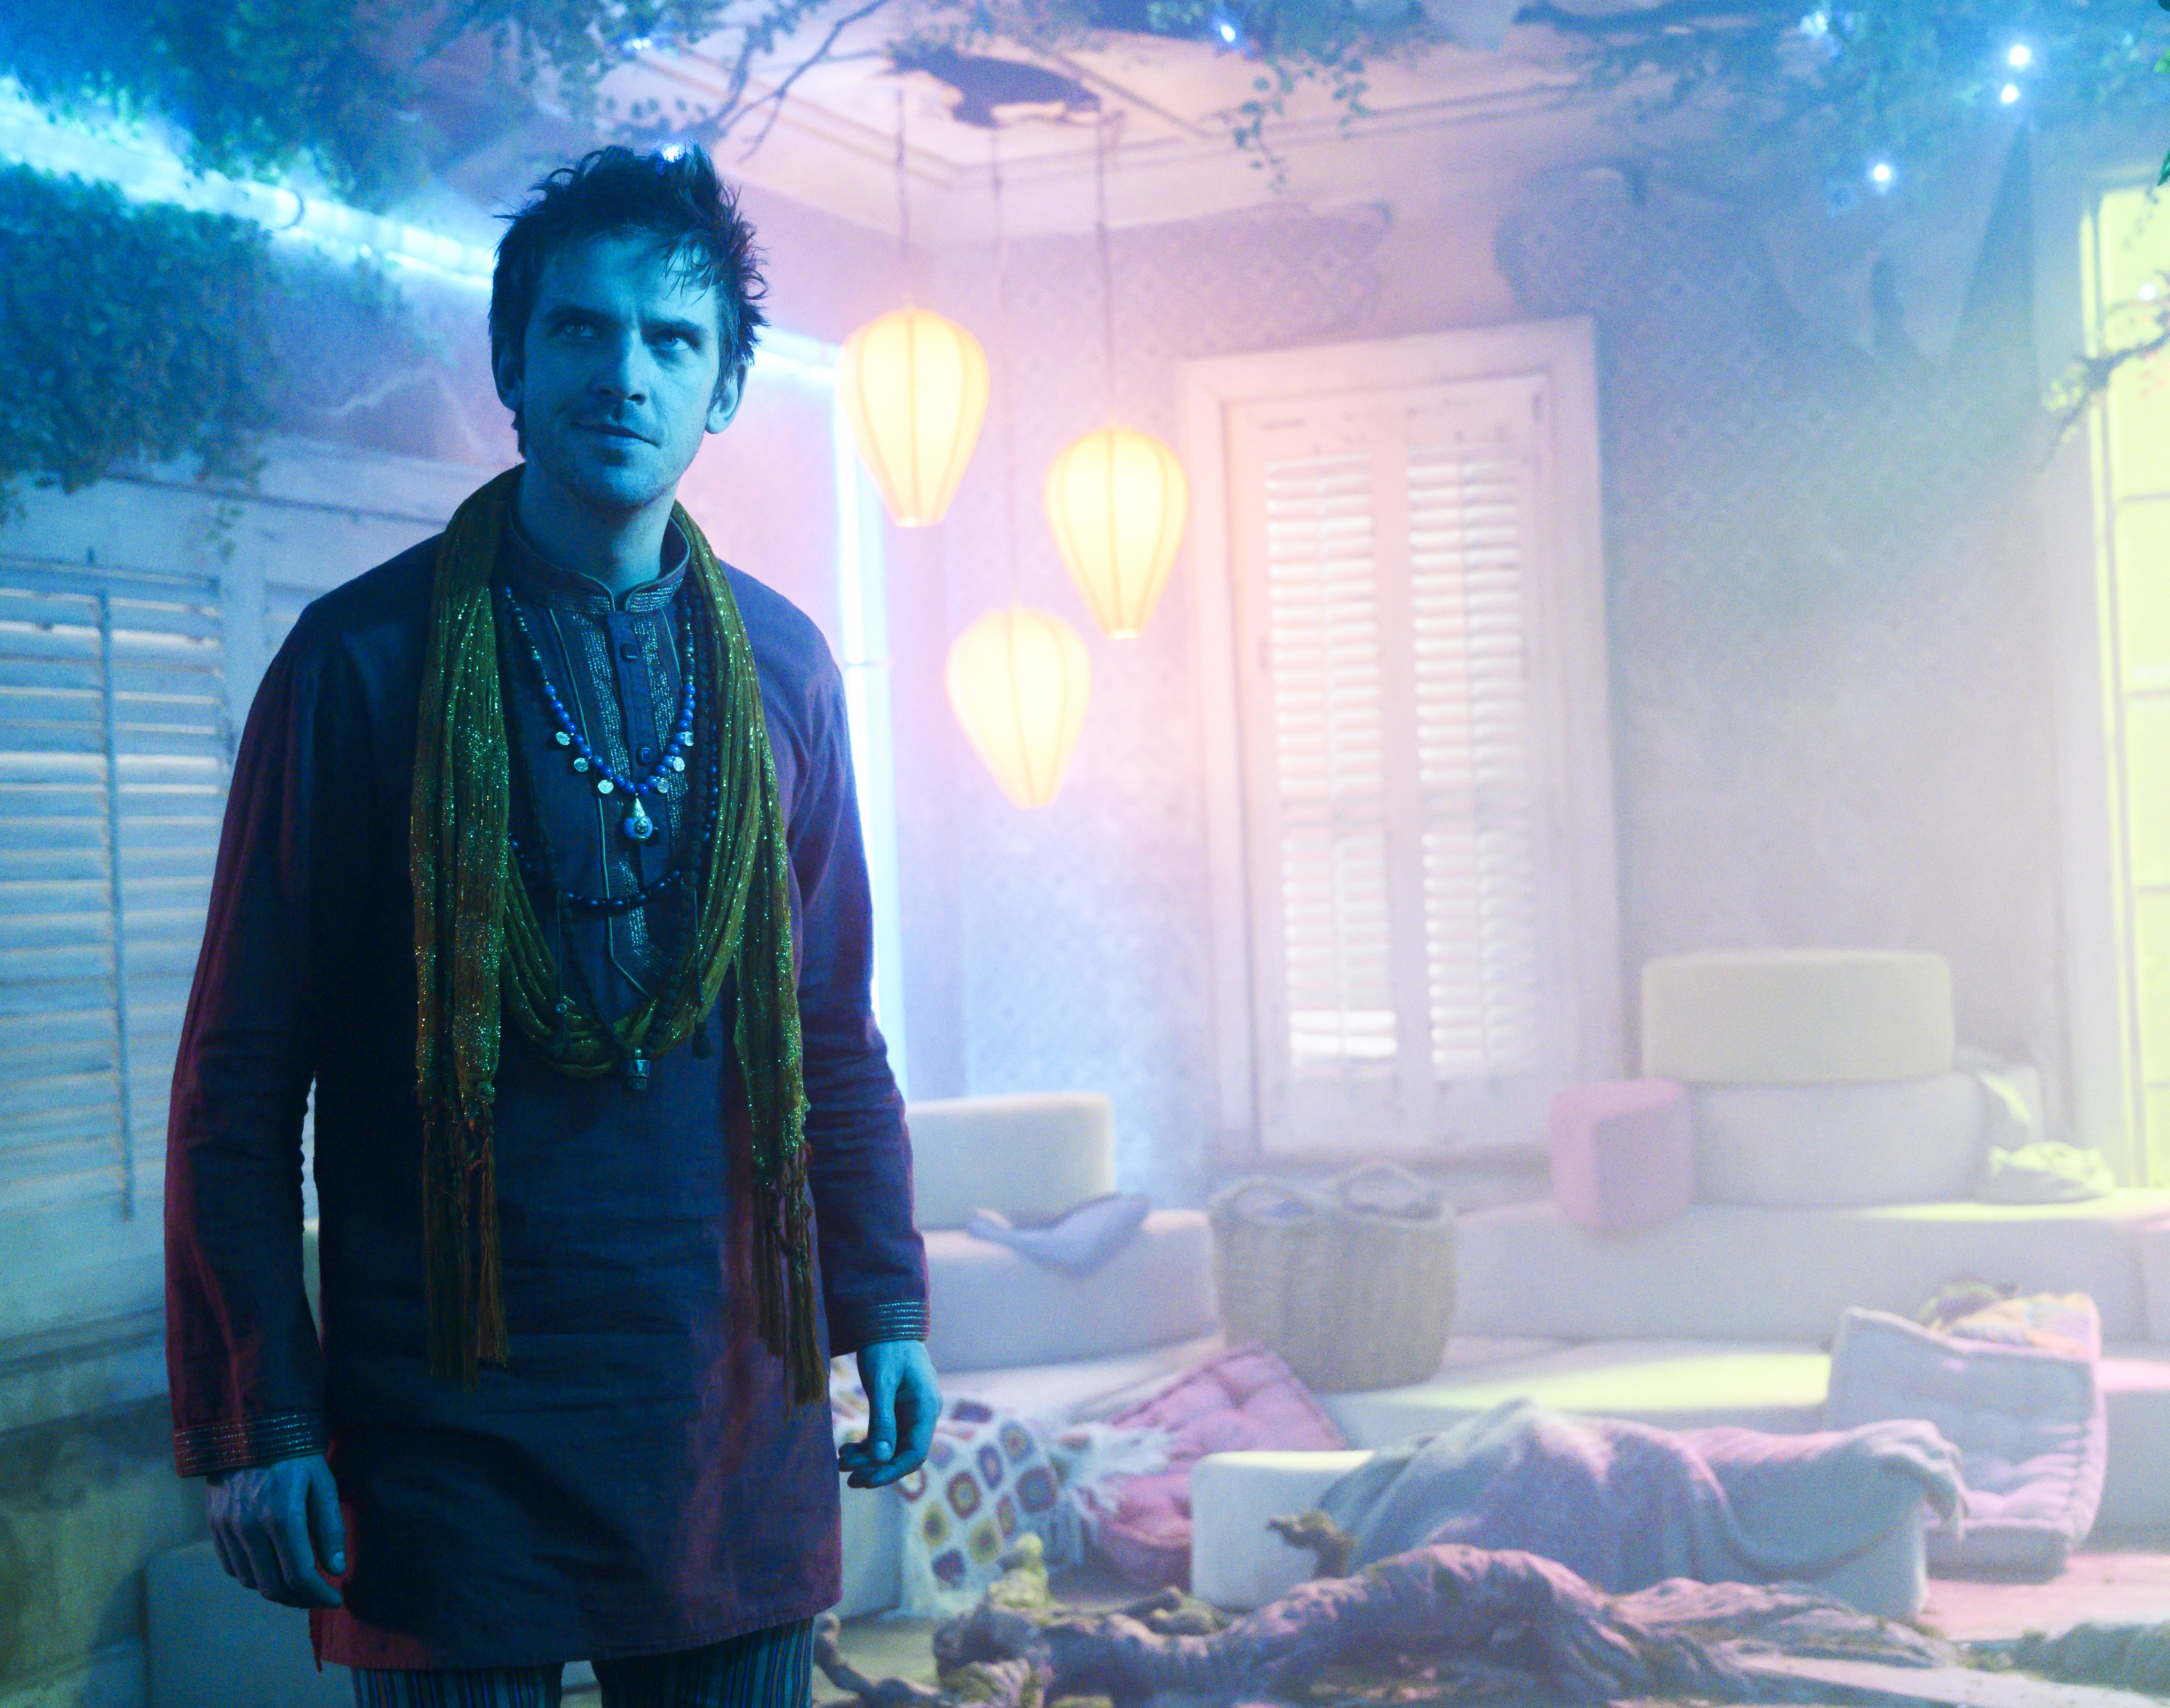 The hollow series finale of Legion only revealed what could have been